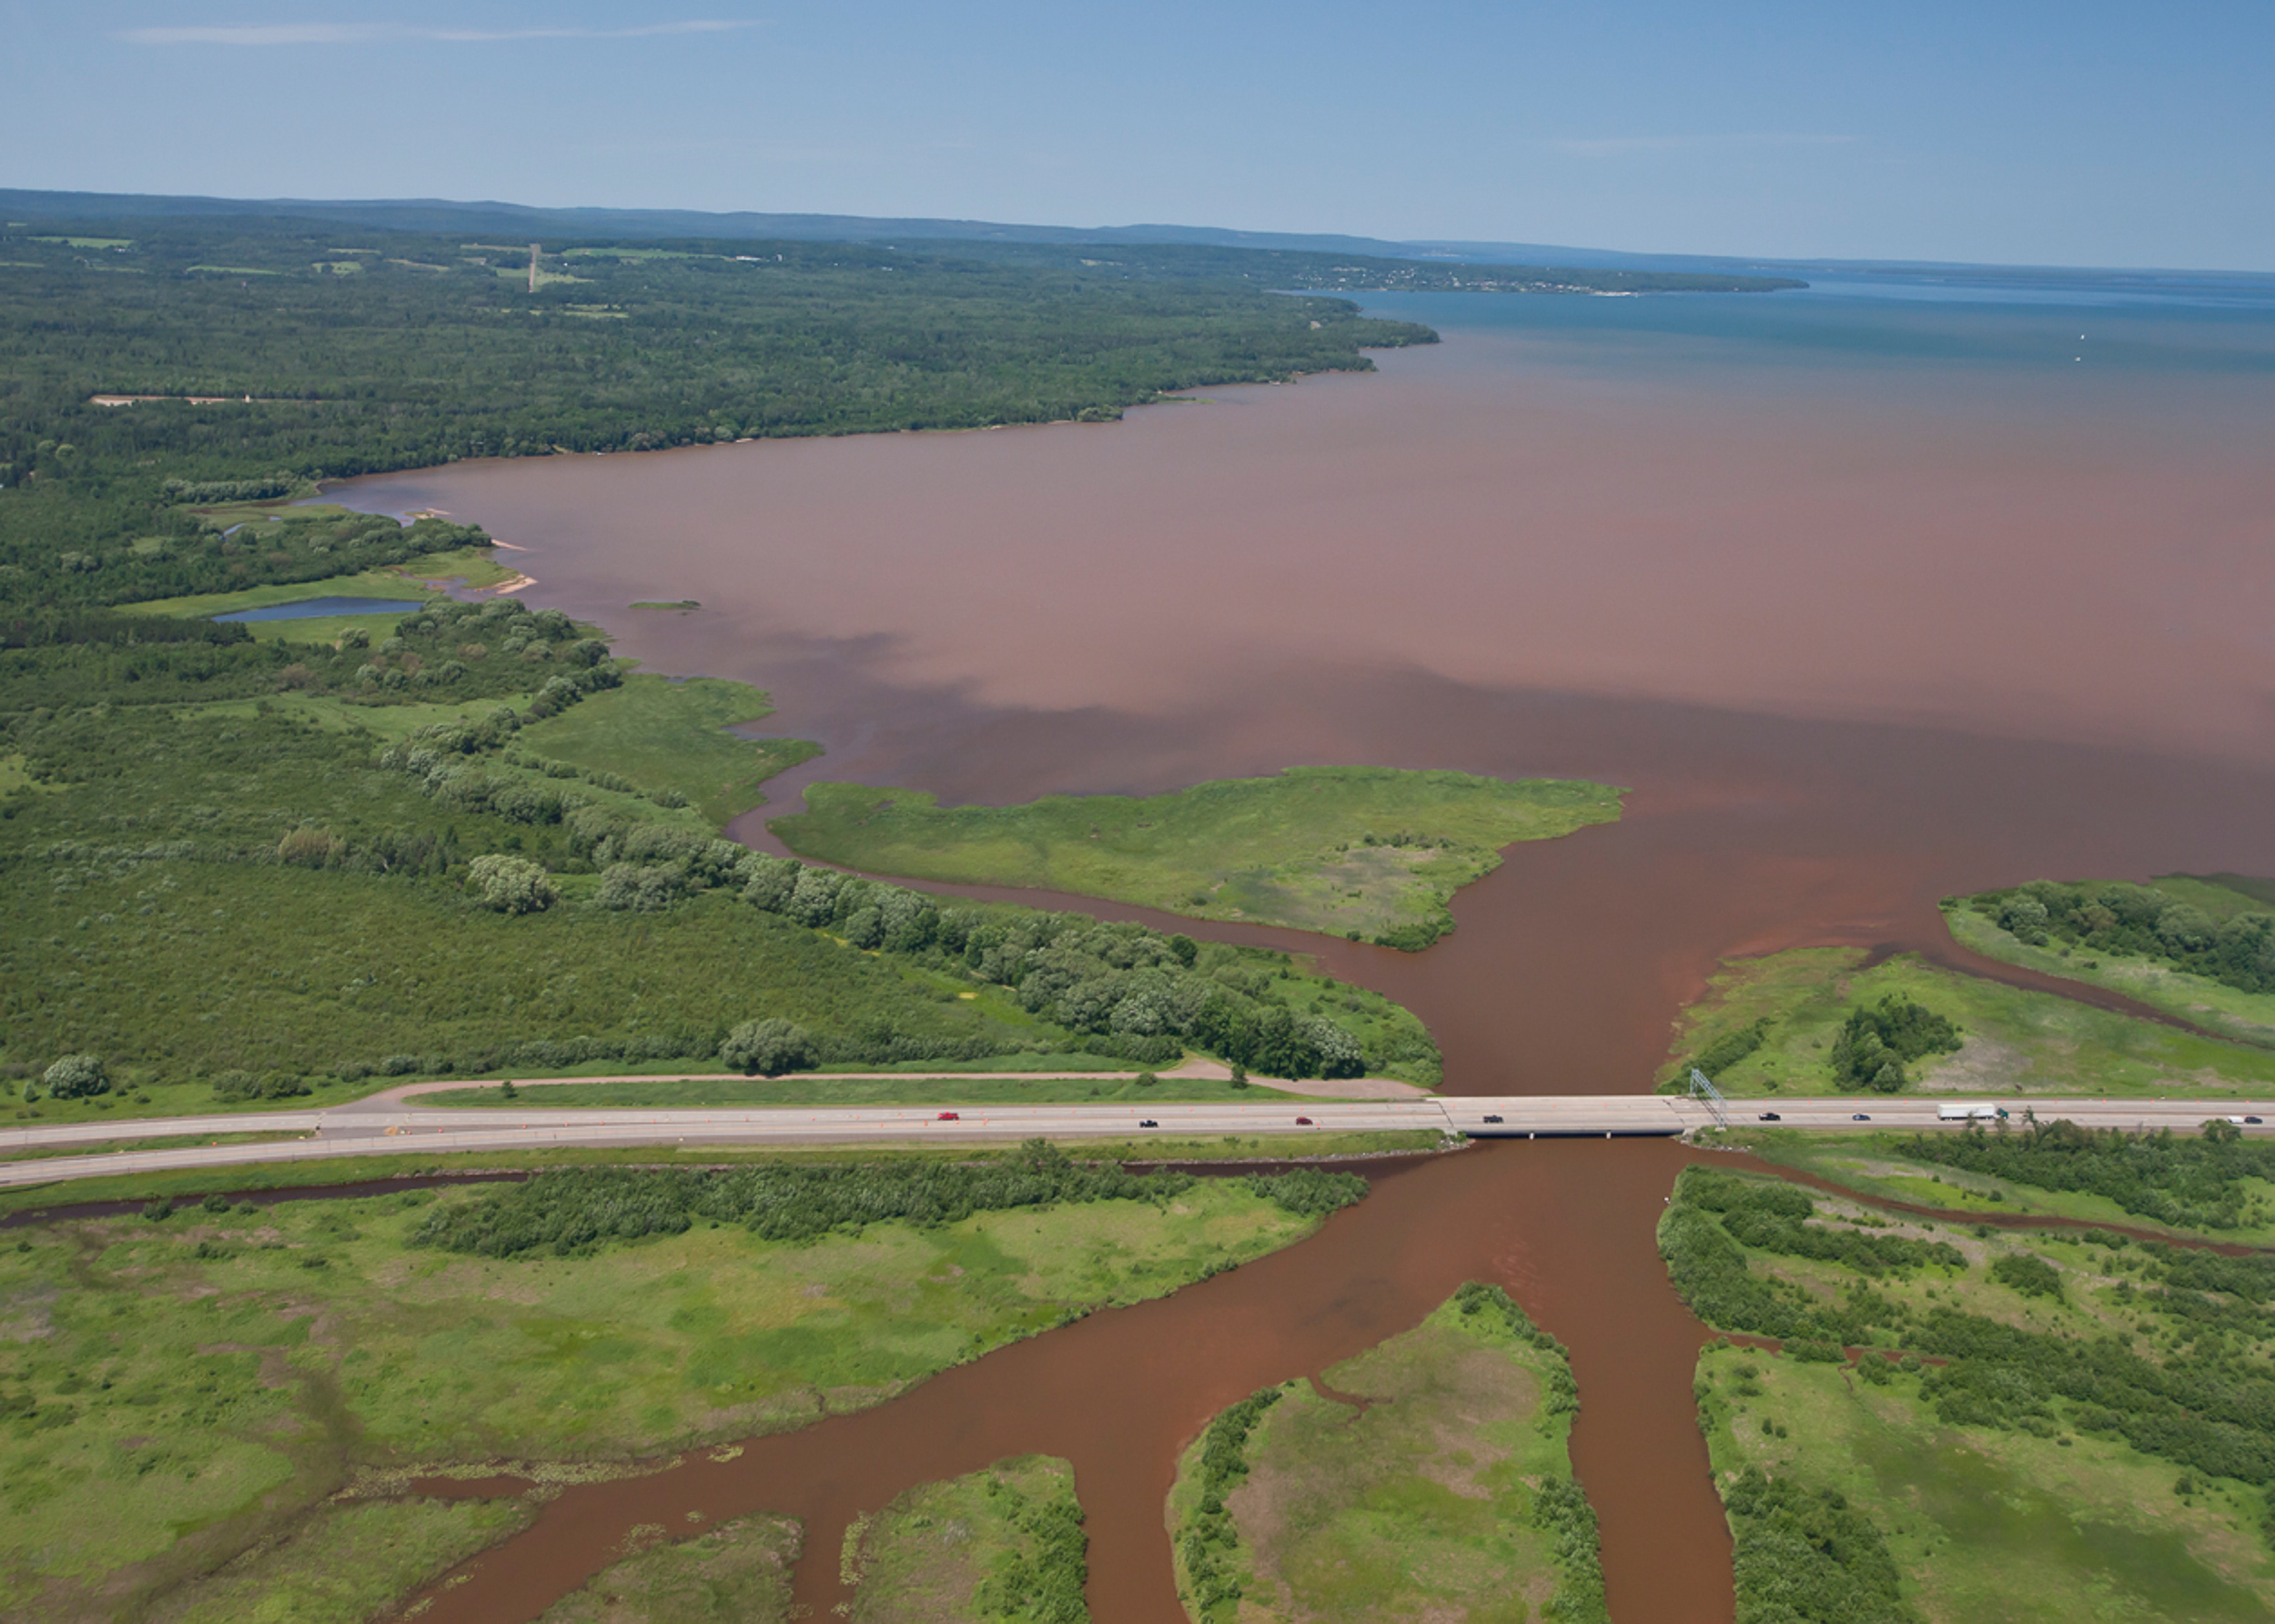 Fish Creek emptying sediment and run-off from farms and residences upstream into the Chequamegon Bay in Lake Superior after a heavy rain in 2013.